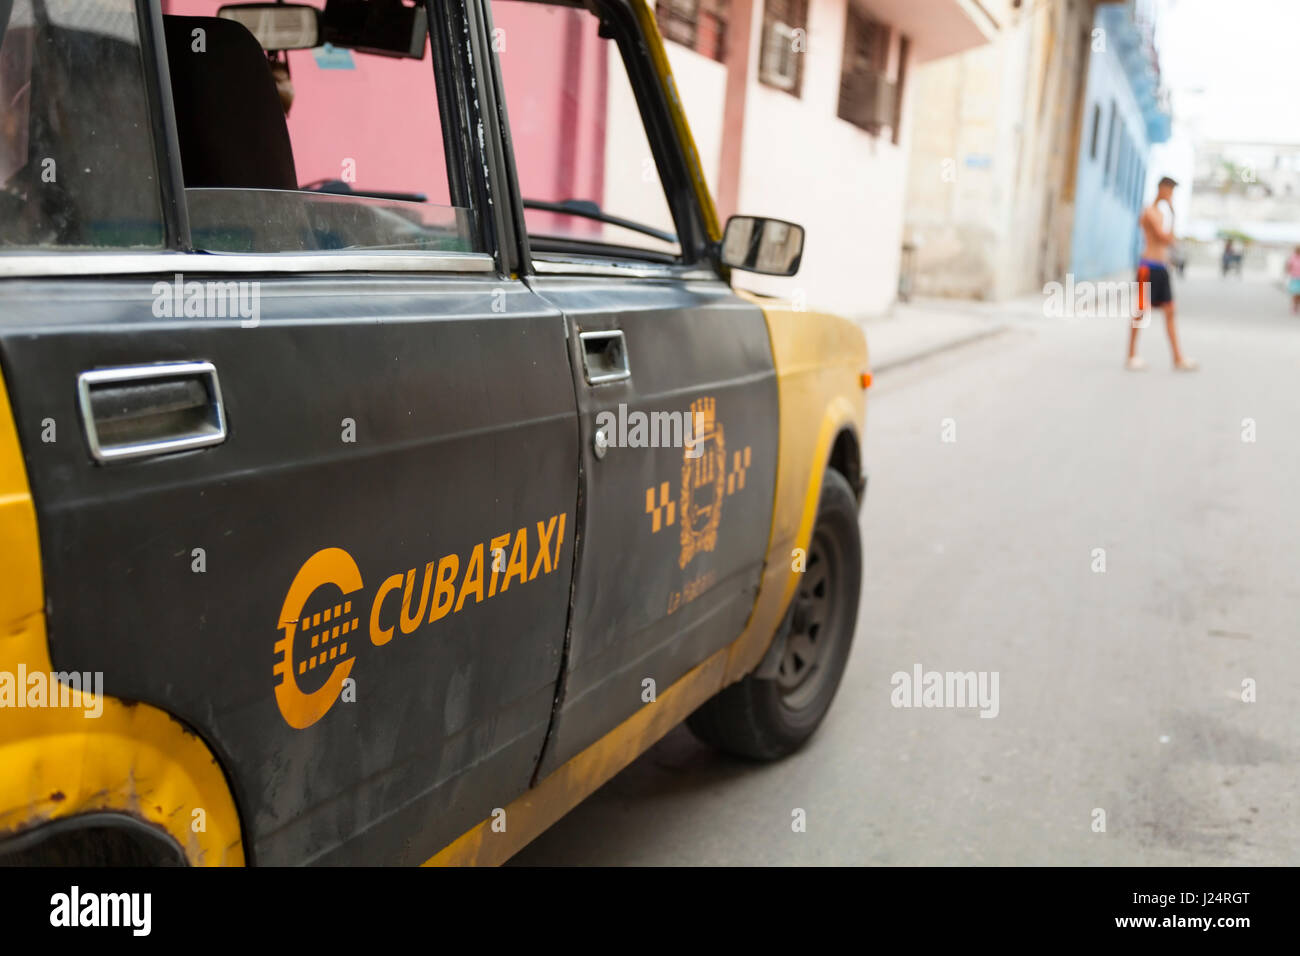 A closeup of an official Cuban taxi in Havana, Cuba. - Stock Image